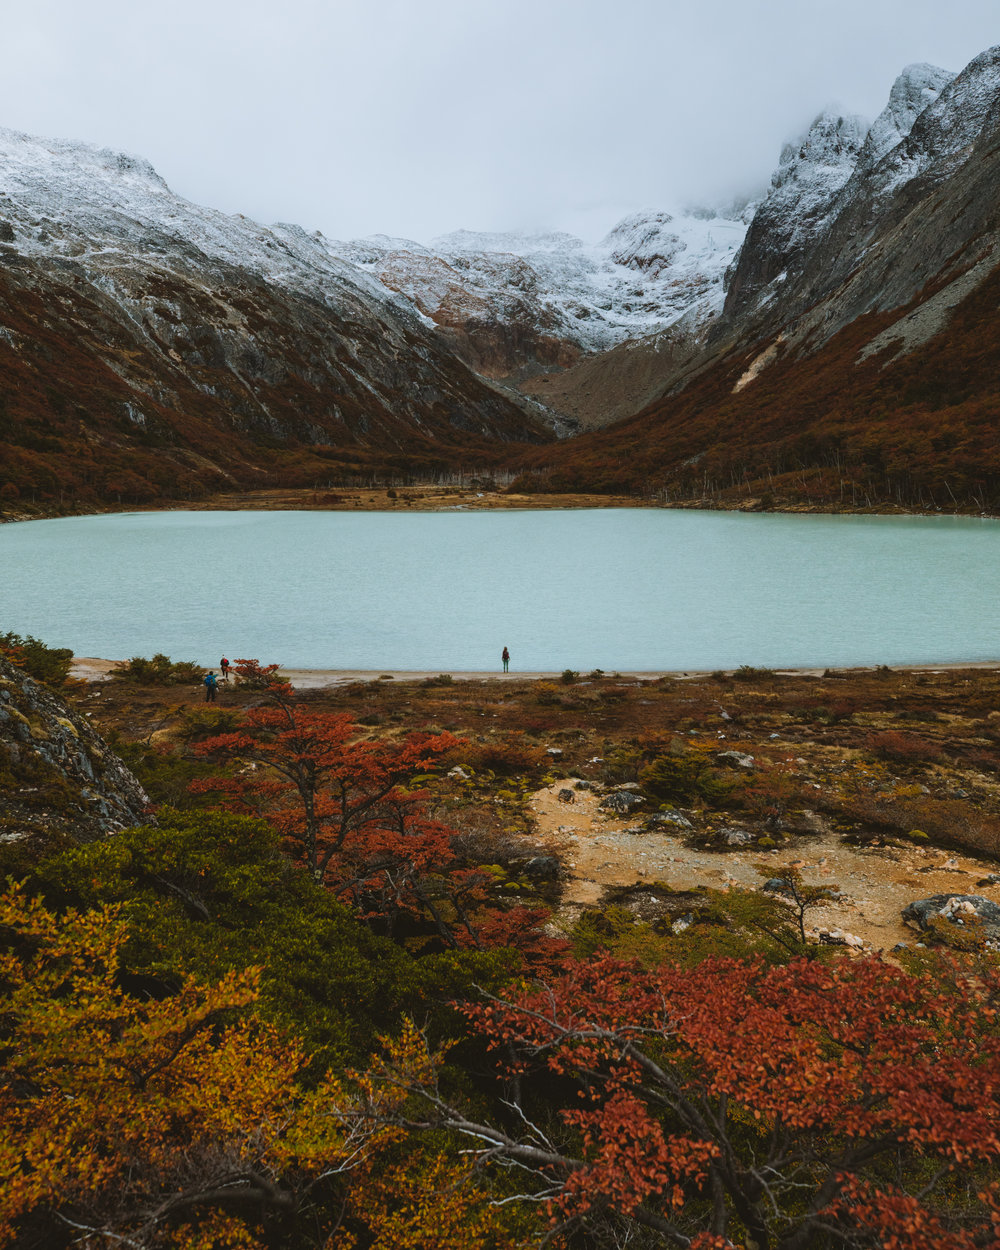 The hike up to Laguna Esmeralda in early April (autumn in South America).